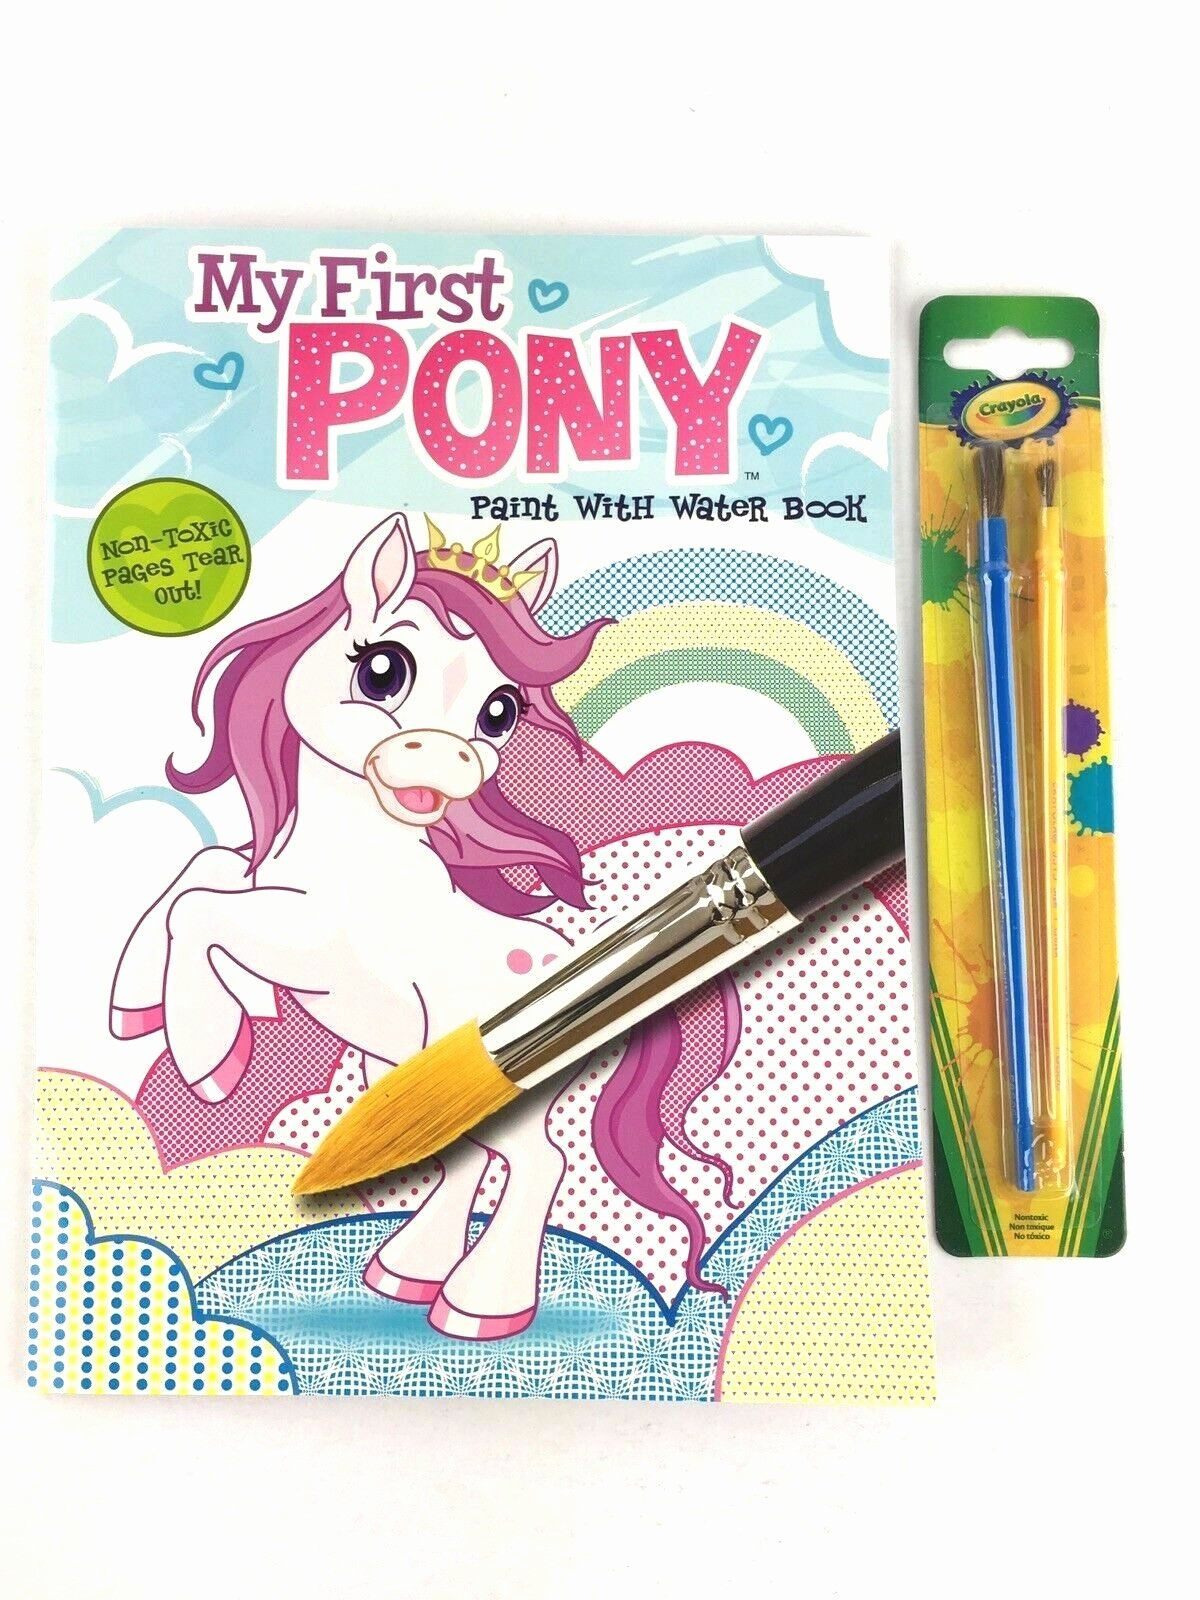 Coloring Book With Water Pen Luxury My First Pony Paint With Water Coloring Book For Kids Crayola Brushes 2 In Coloring Books Christmas Coloring Books Crayola